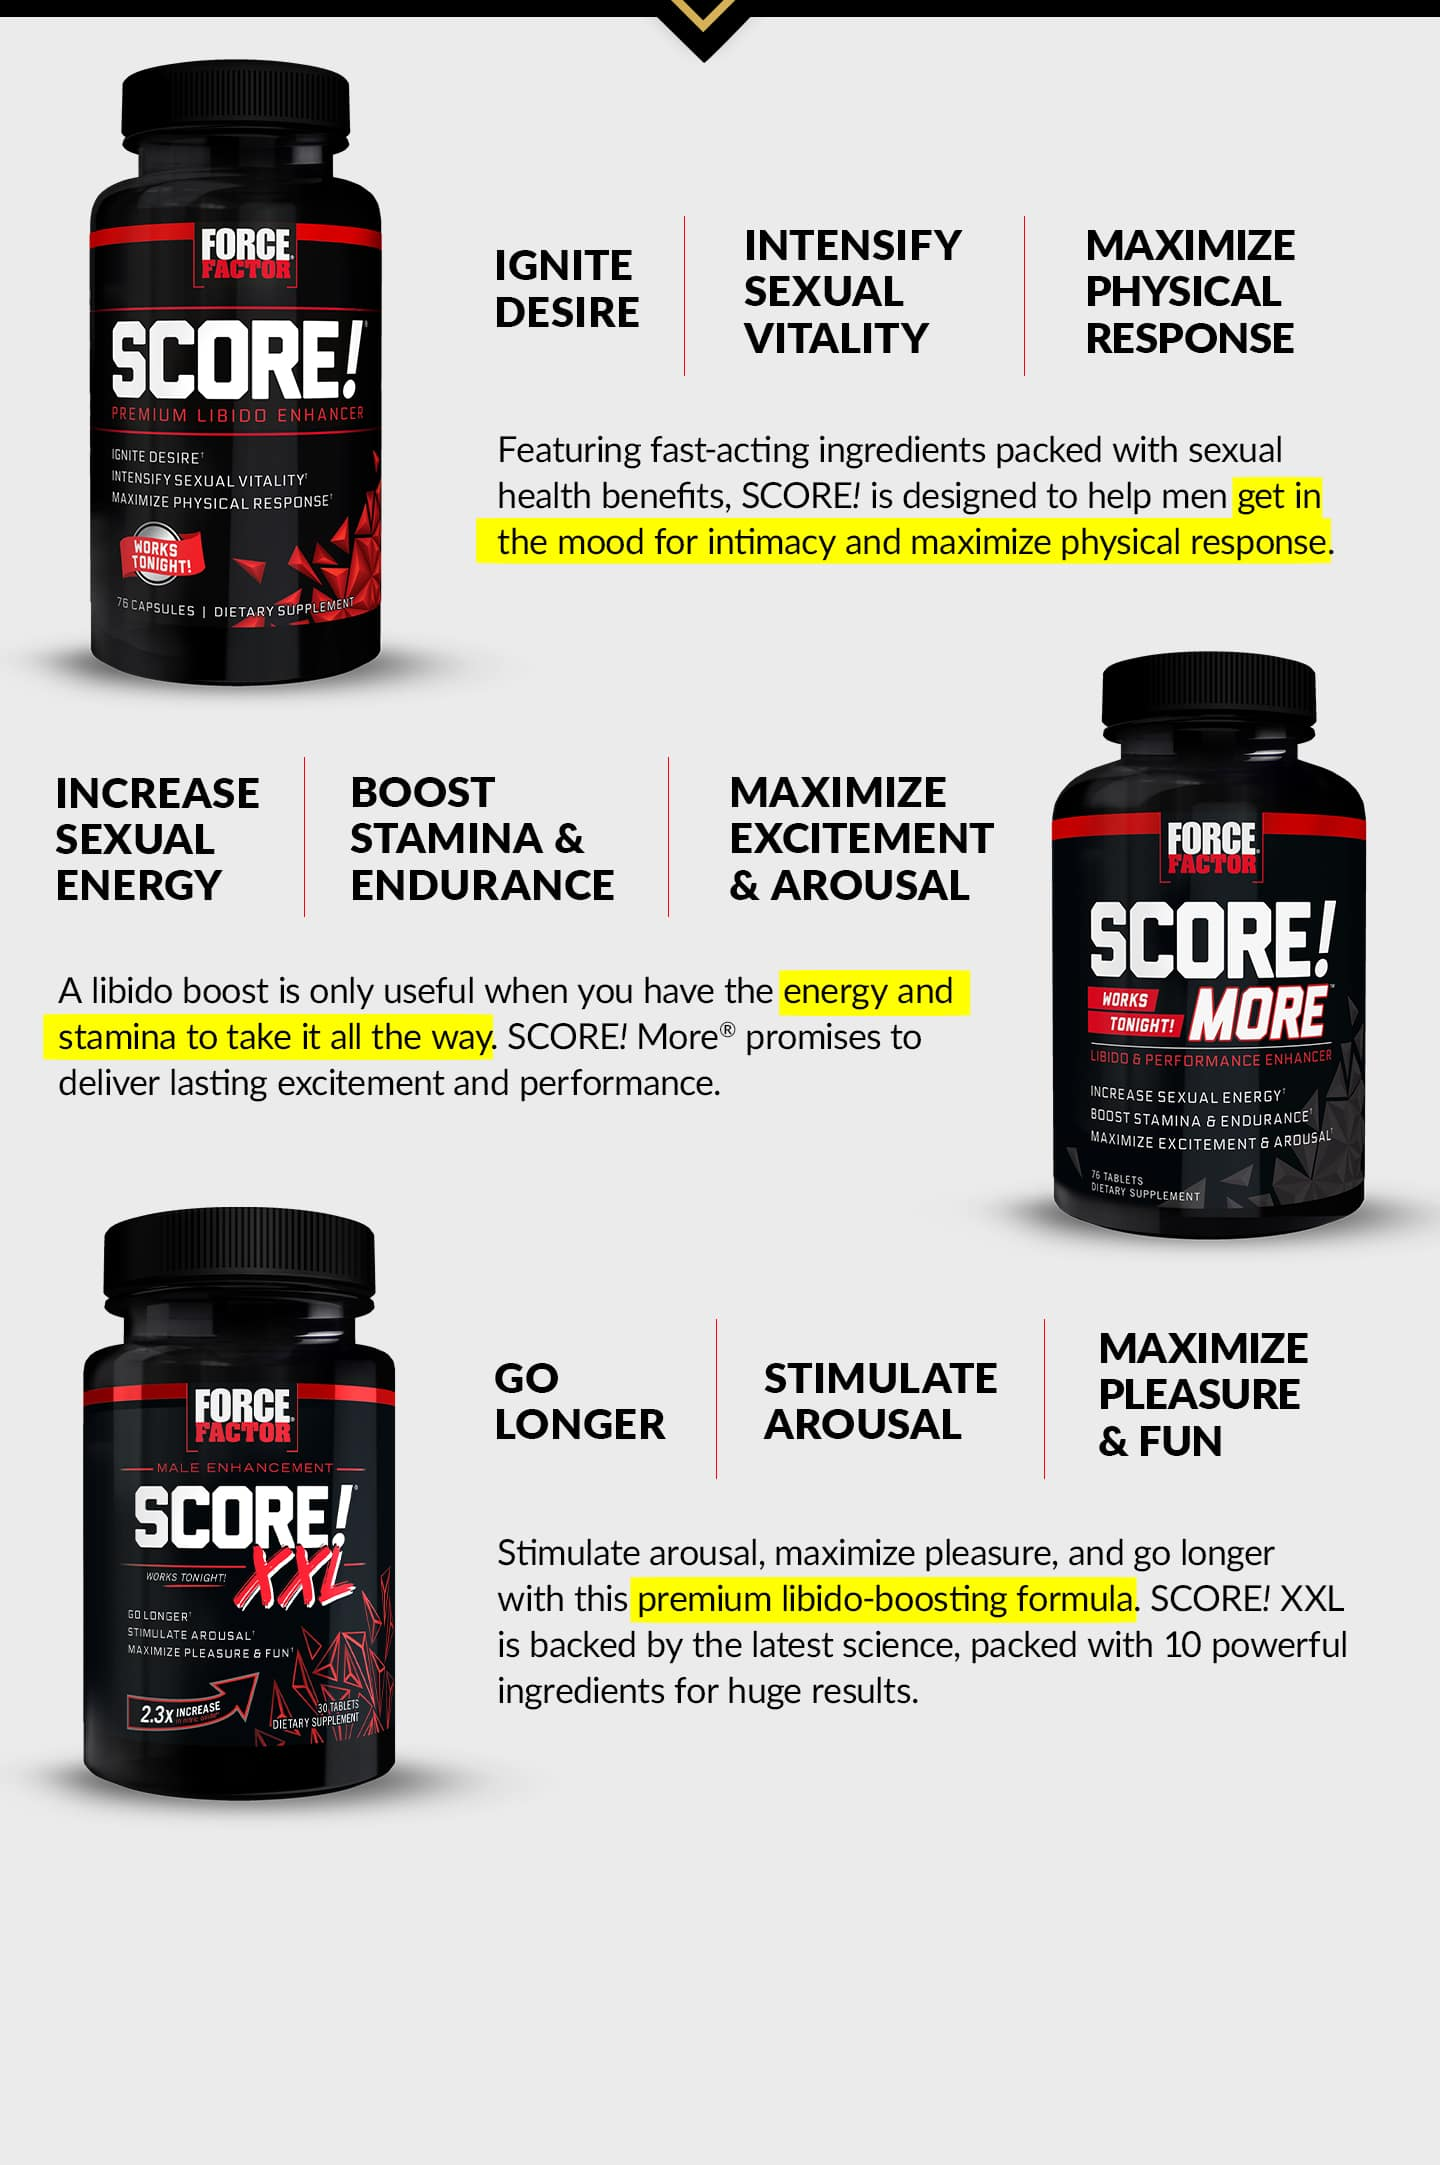 Featuring fast-acting ingredients packed with sexual health benefits, SCORE! is designed to help men get in the mood for intimacy and maximize physical response. IGNITE DESIRE. INTENSIFY SEXUAL VITALITY. MAXIMIZE PHYSICAL RESPONSE.A libido boost is only useful when you have the energy and stamina to take it all the way. SCORE! More promises to deliver lasting excitement and performance. INCREASE SEXUAL ENERGY, BOOST STAMINA & ENDURANCE, MAXIMIZE EXCITEMENT & AROUSAL. Stimulate arousal, maximize pleasure, and go longer with this premium libido-boosting formula. SCORE! XXL is backed by the latest science, packed with 10 powerful ingredients for huge results. GO LONGER. STIMULATE AROUSAL. MAXIMIZE PLEASURE AND FUN.